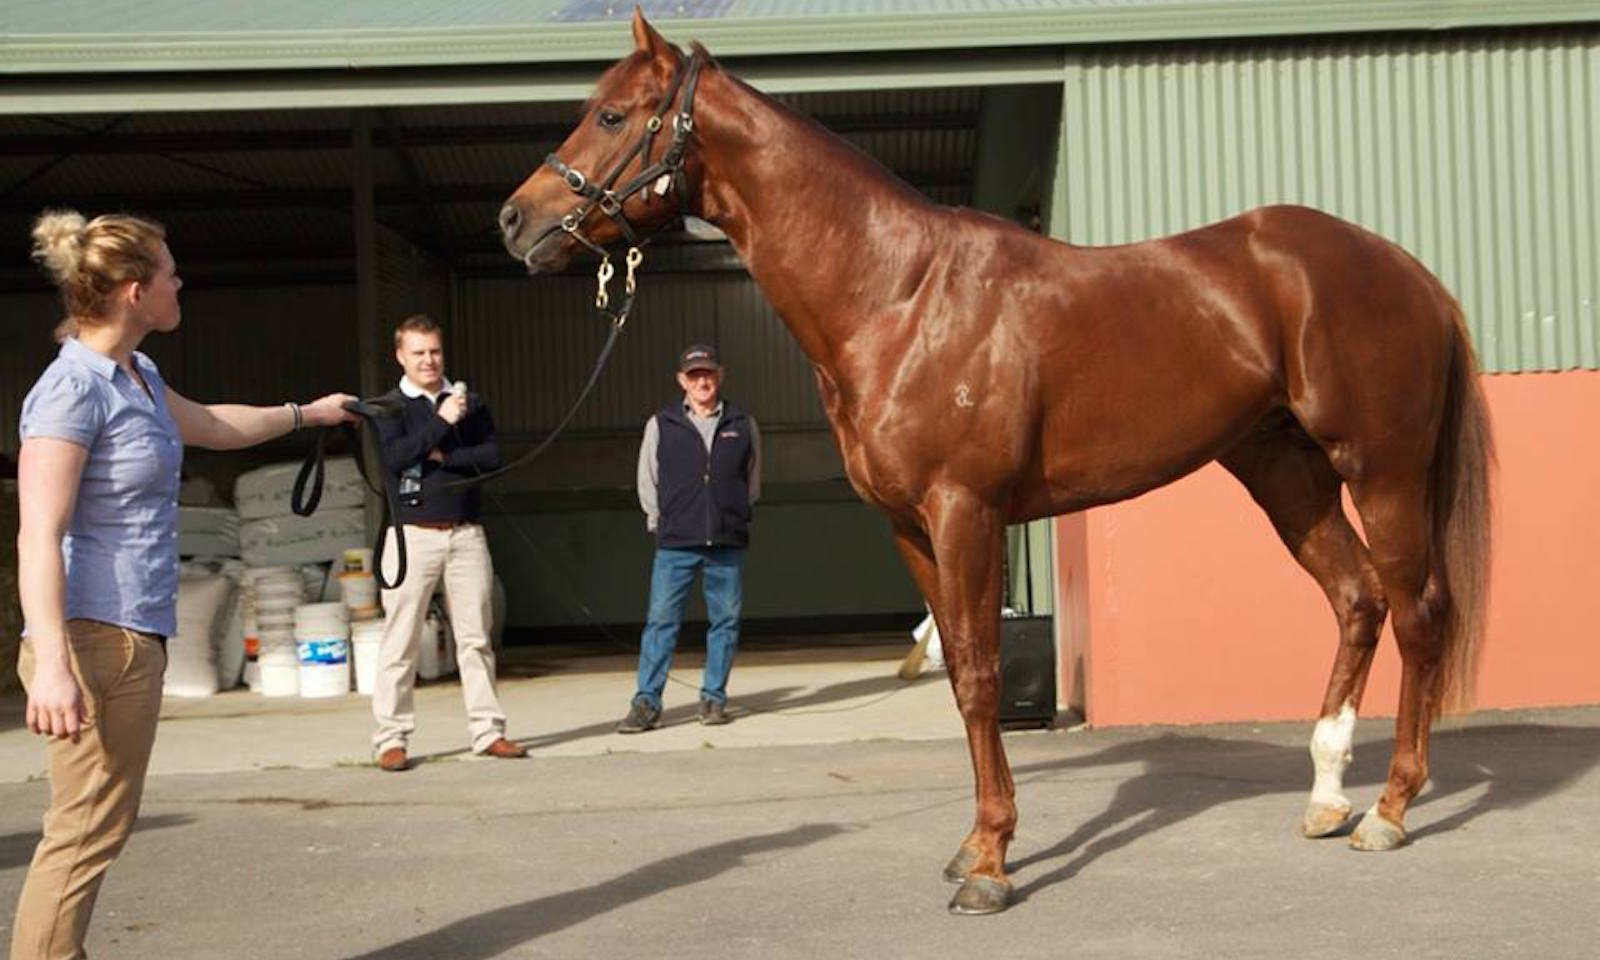 The Ultimate Horse Lovers Experience - Spicer Thoroughbreds New Zealand Tour